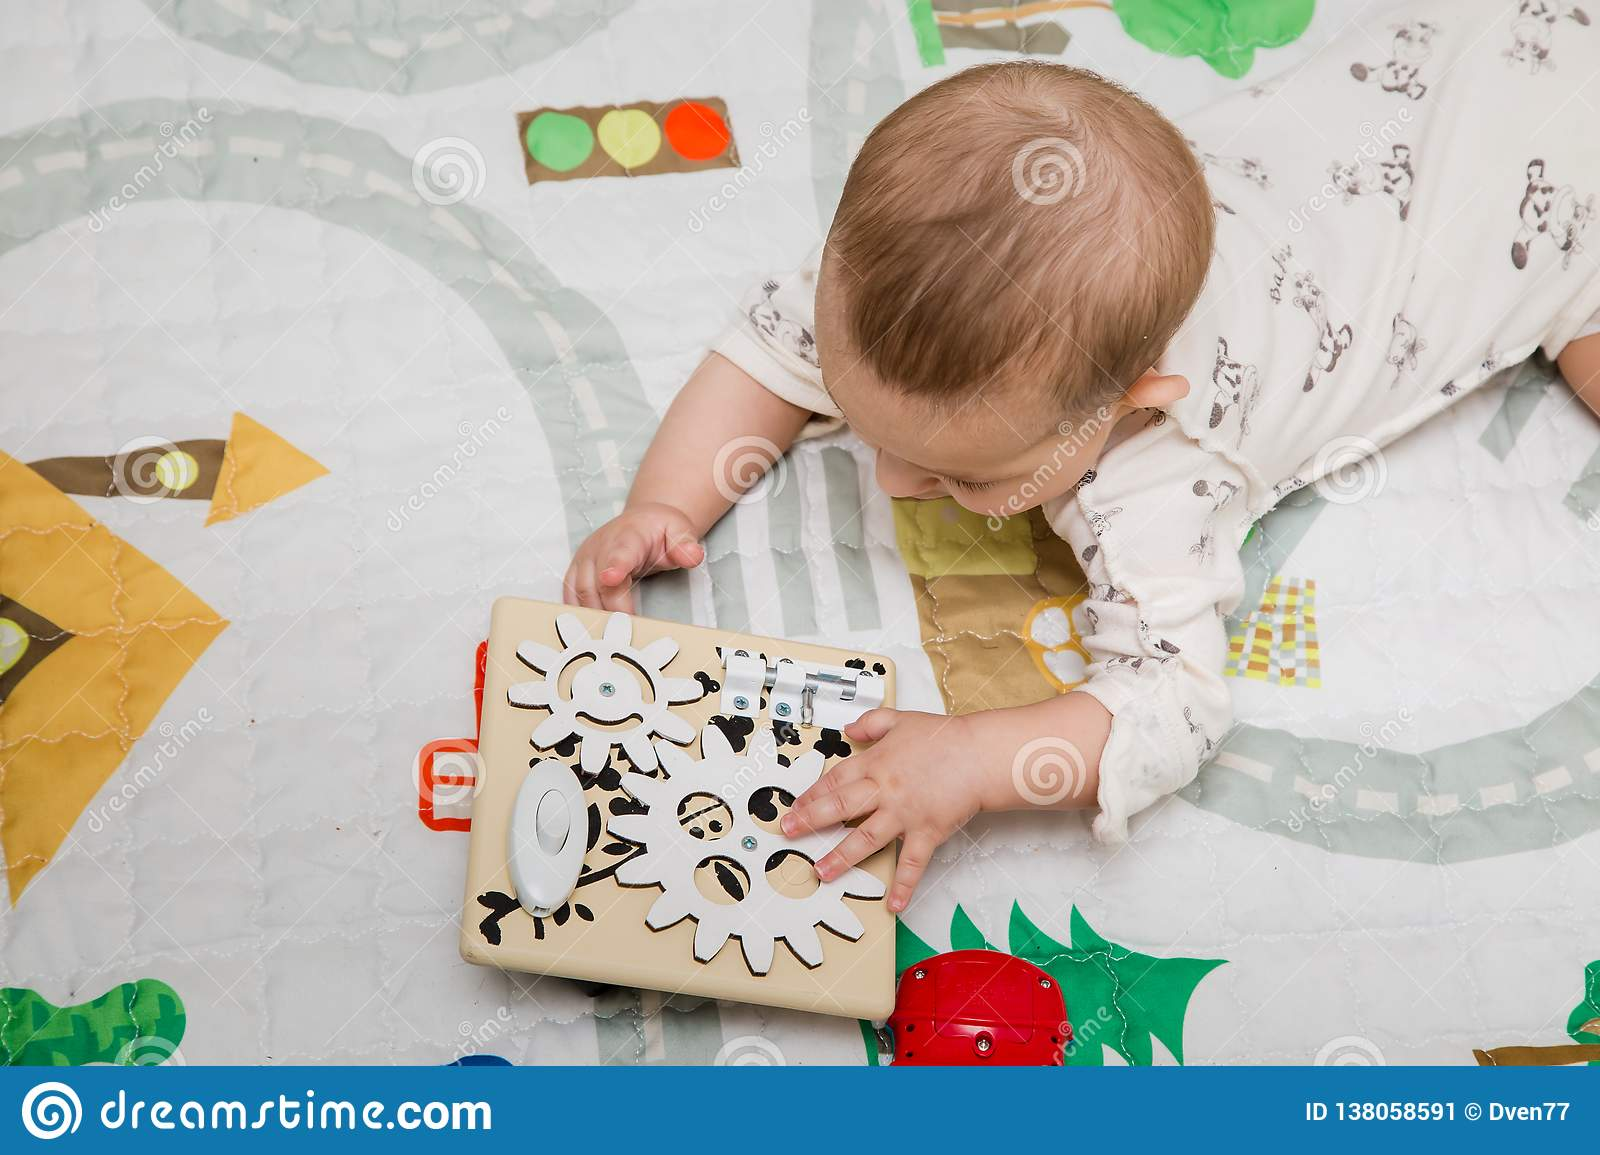 Moscow January 2019 Infant Baby Play With Diy Handmade Busy Board